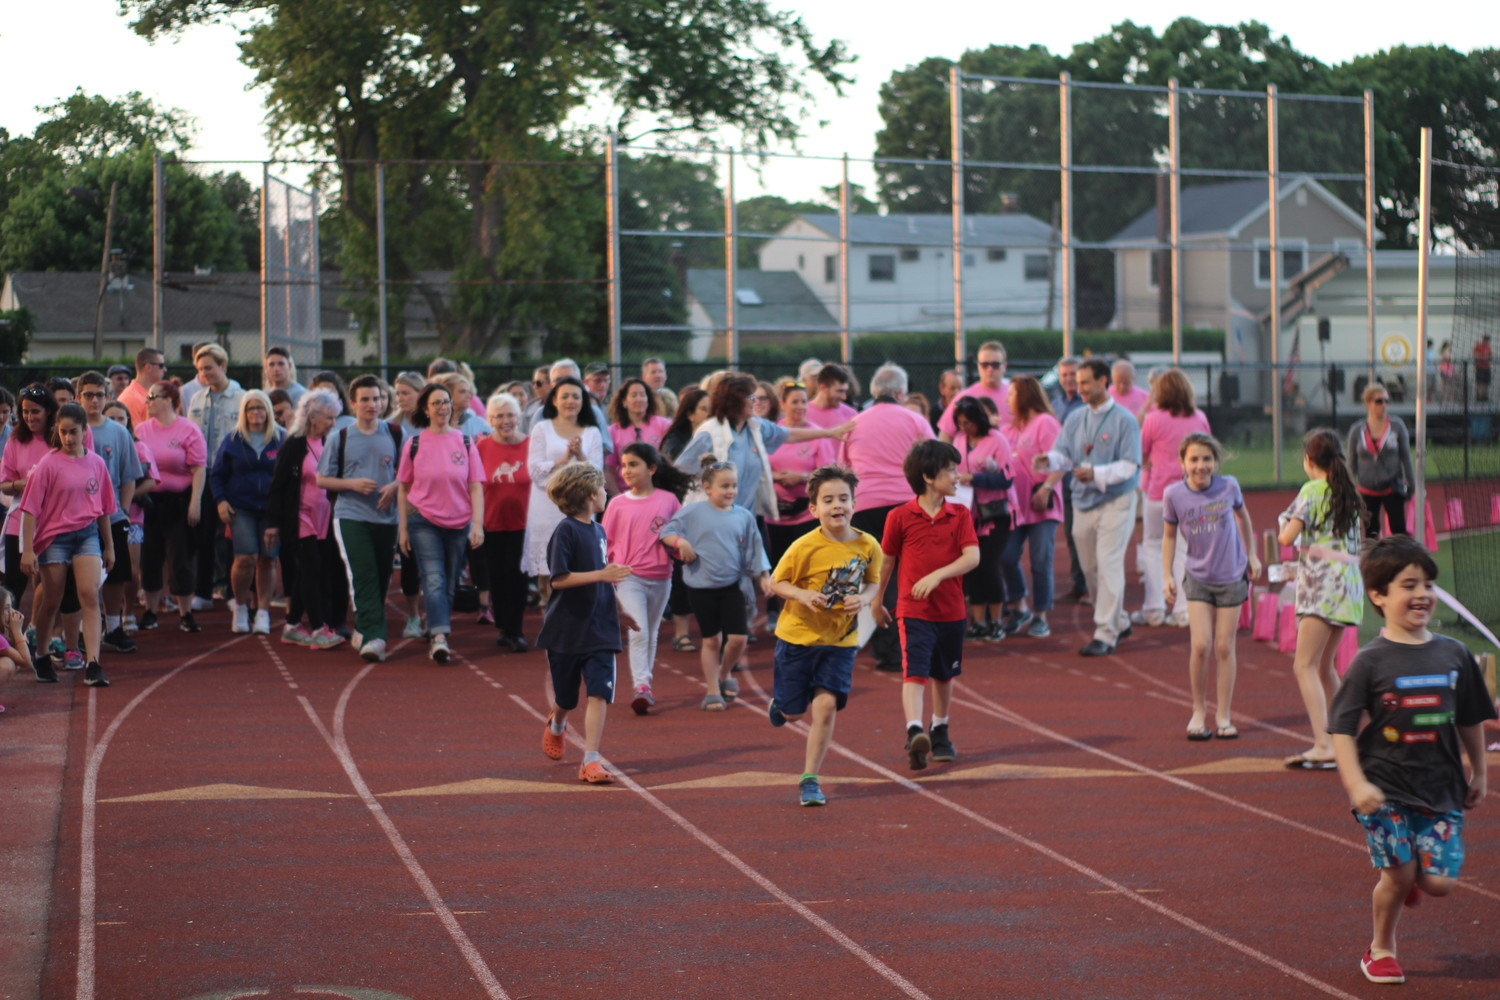 Seaford residents and other Long Islanders took to Seaford High School's track to participate in the event, which benefited the Susan Satriano Memorial Foundation.